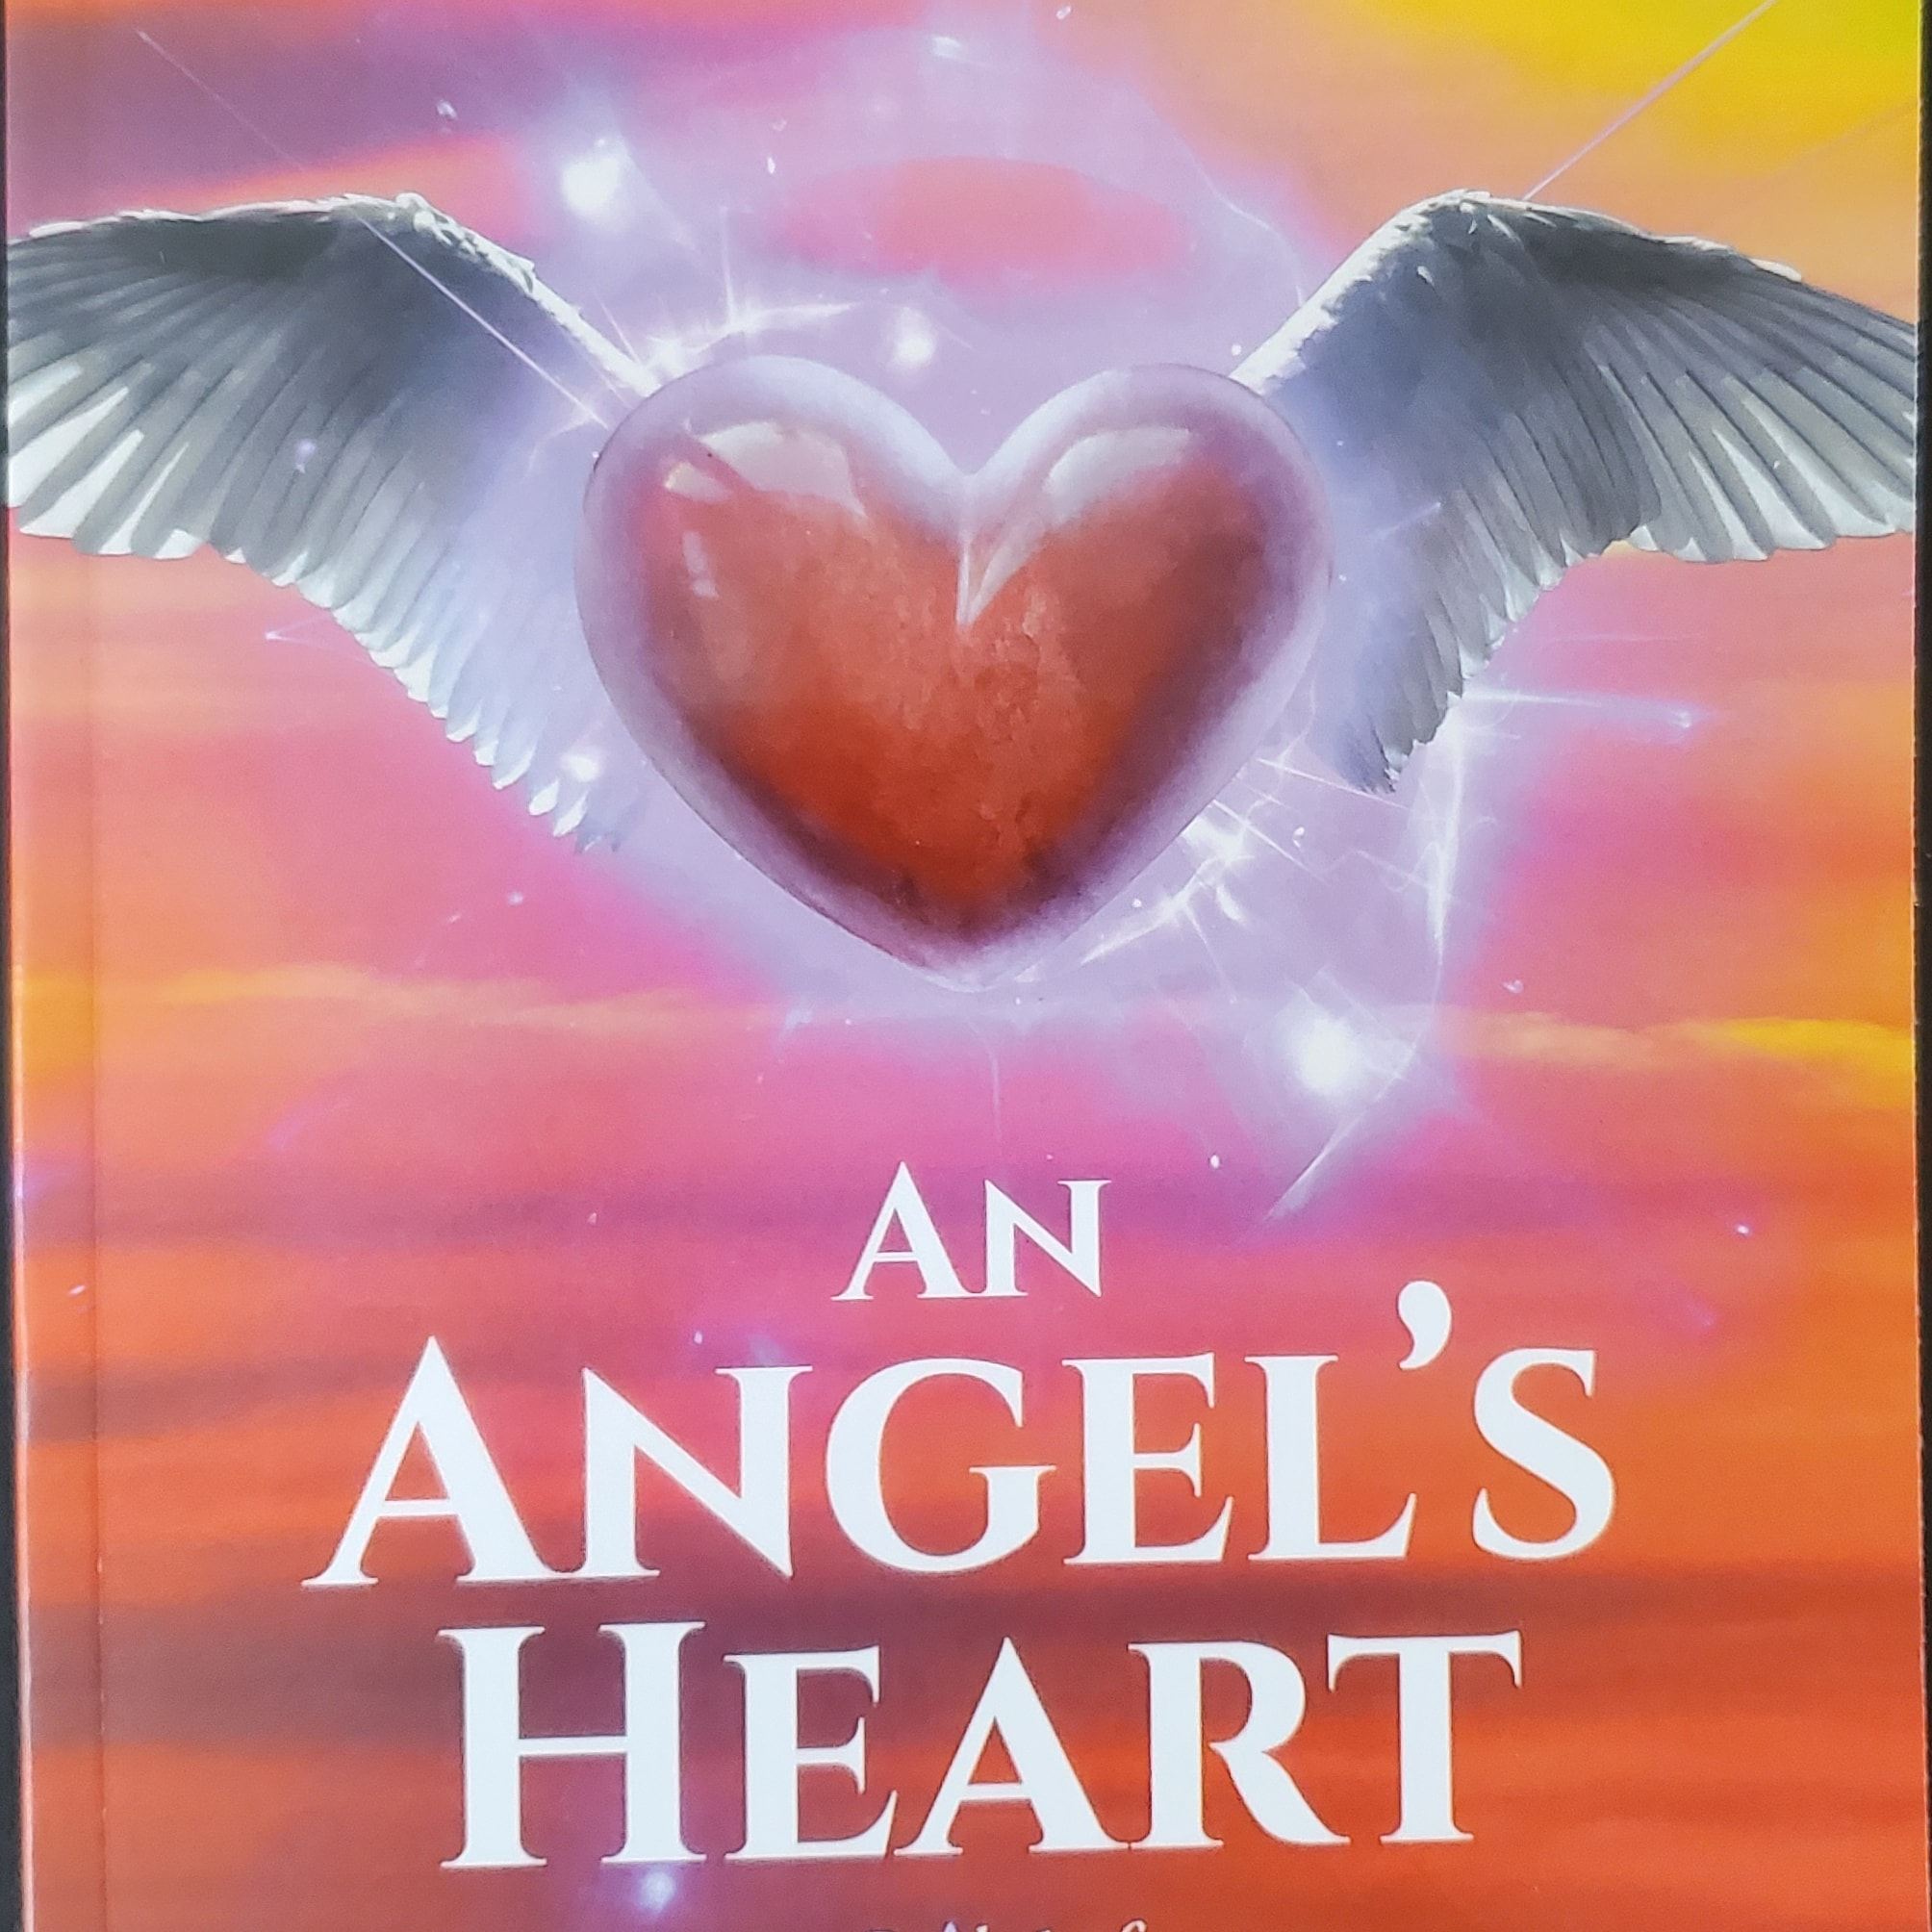 An Angel's Heart's Ebook Image